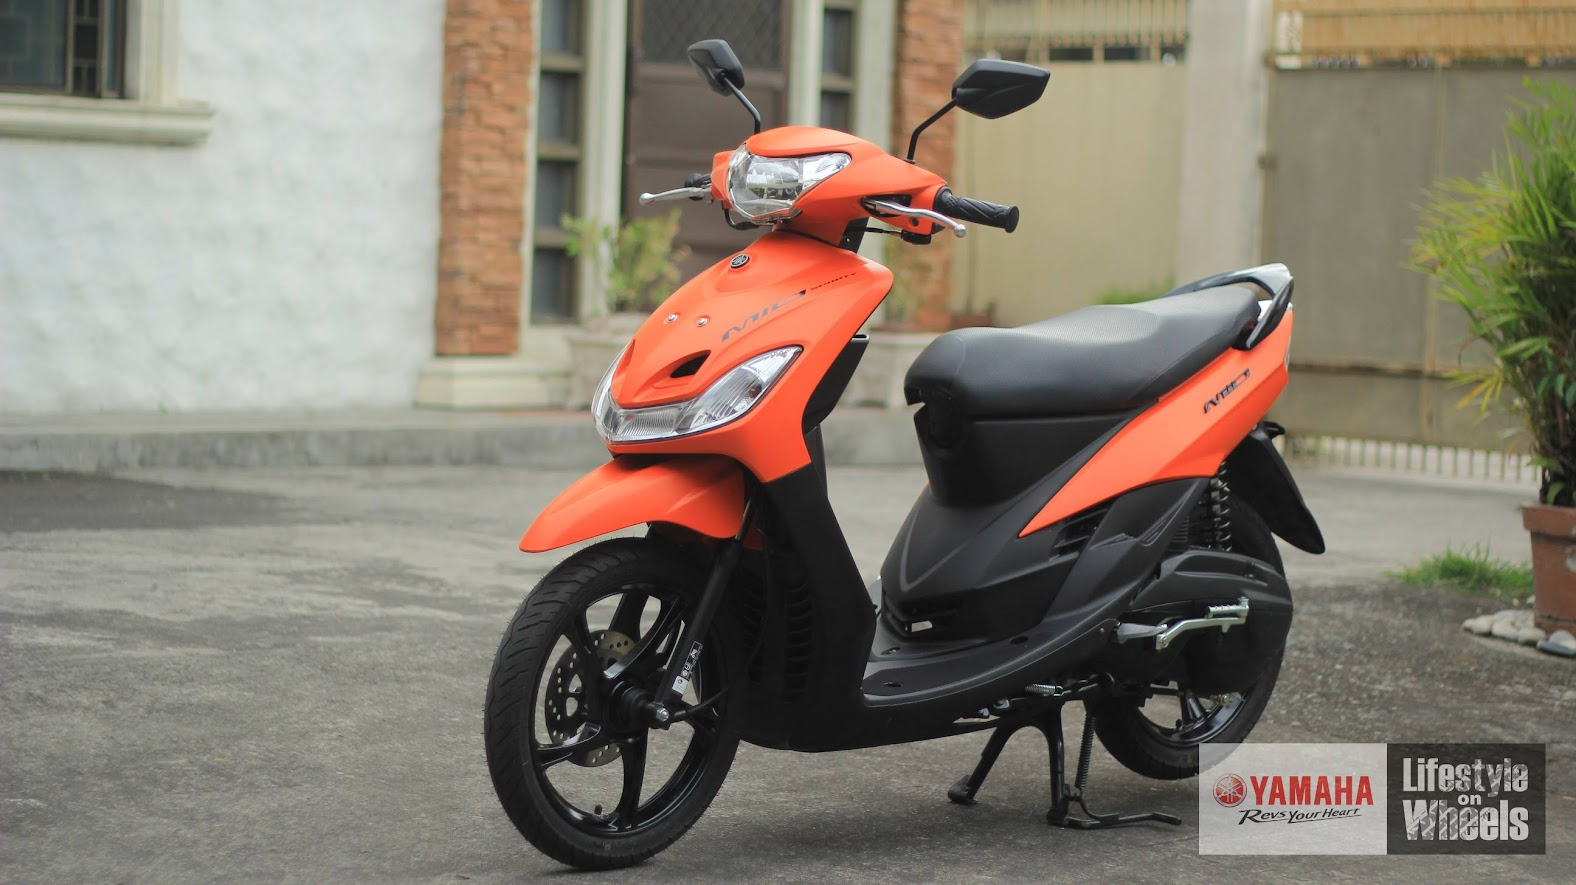 hight resolution of the yamaha mio sporty 2018 still looks exactly the same from the very first release of the model and just few minor changes were undertaken to make this